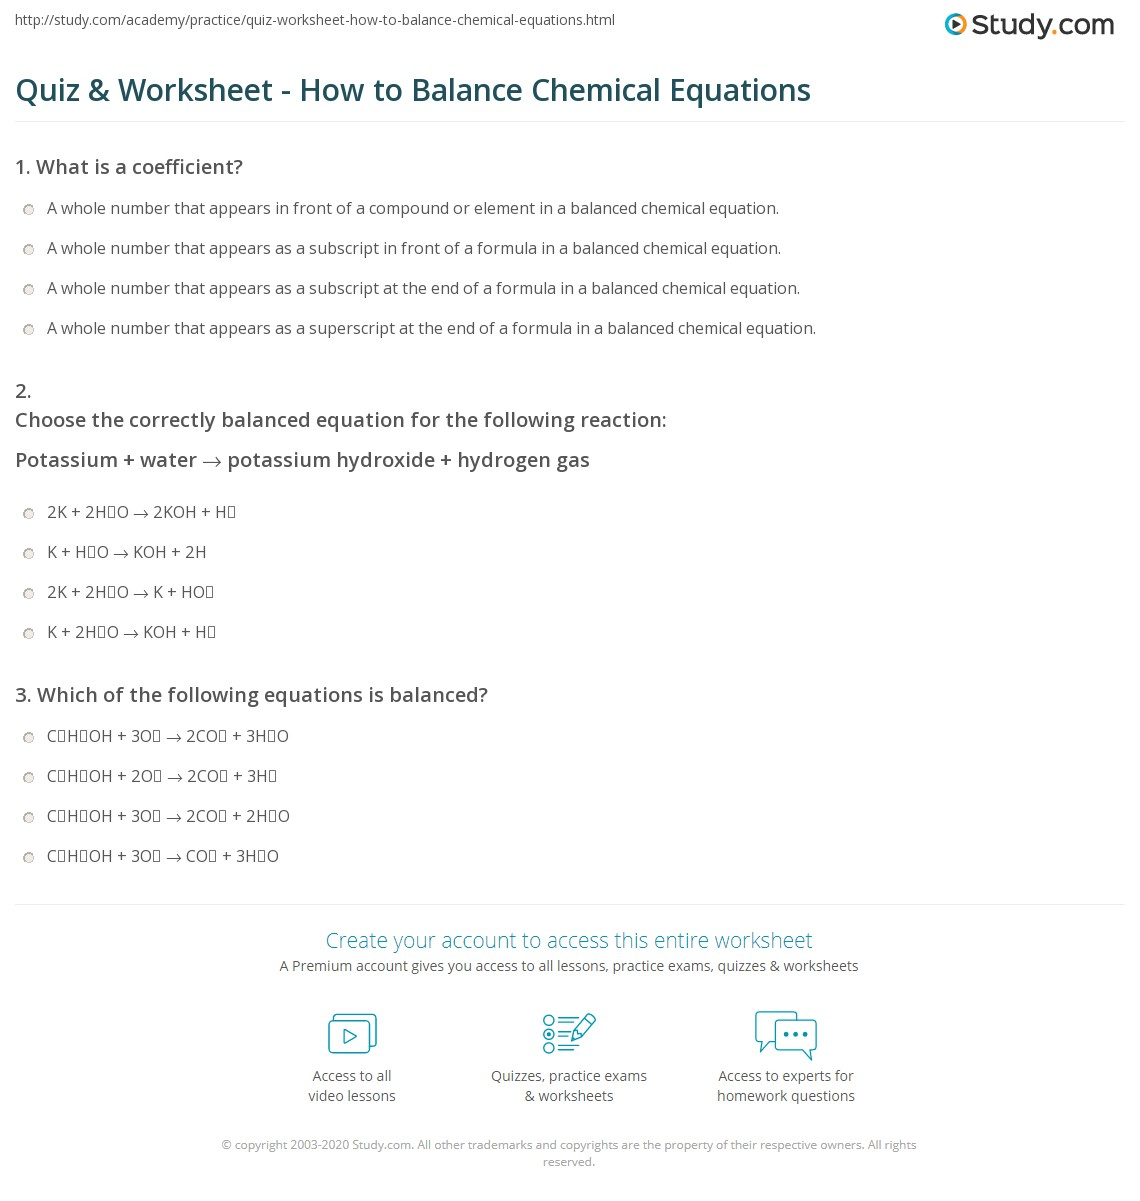 math worksheet : quiz  worksheet  how to balance chemical equations  study  : Math In Chemistry Worksheet